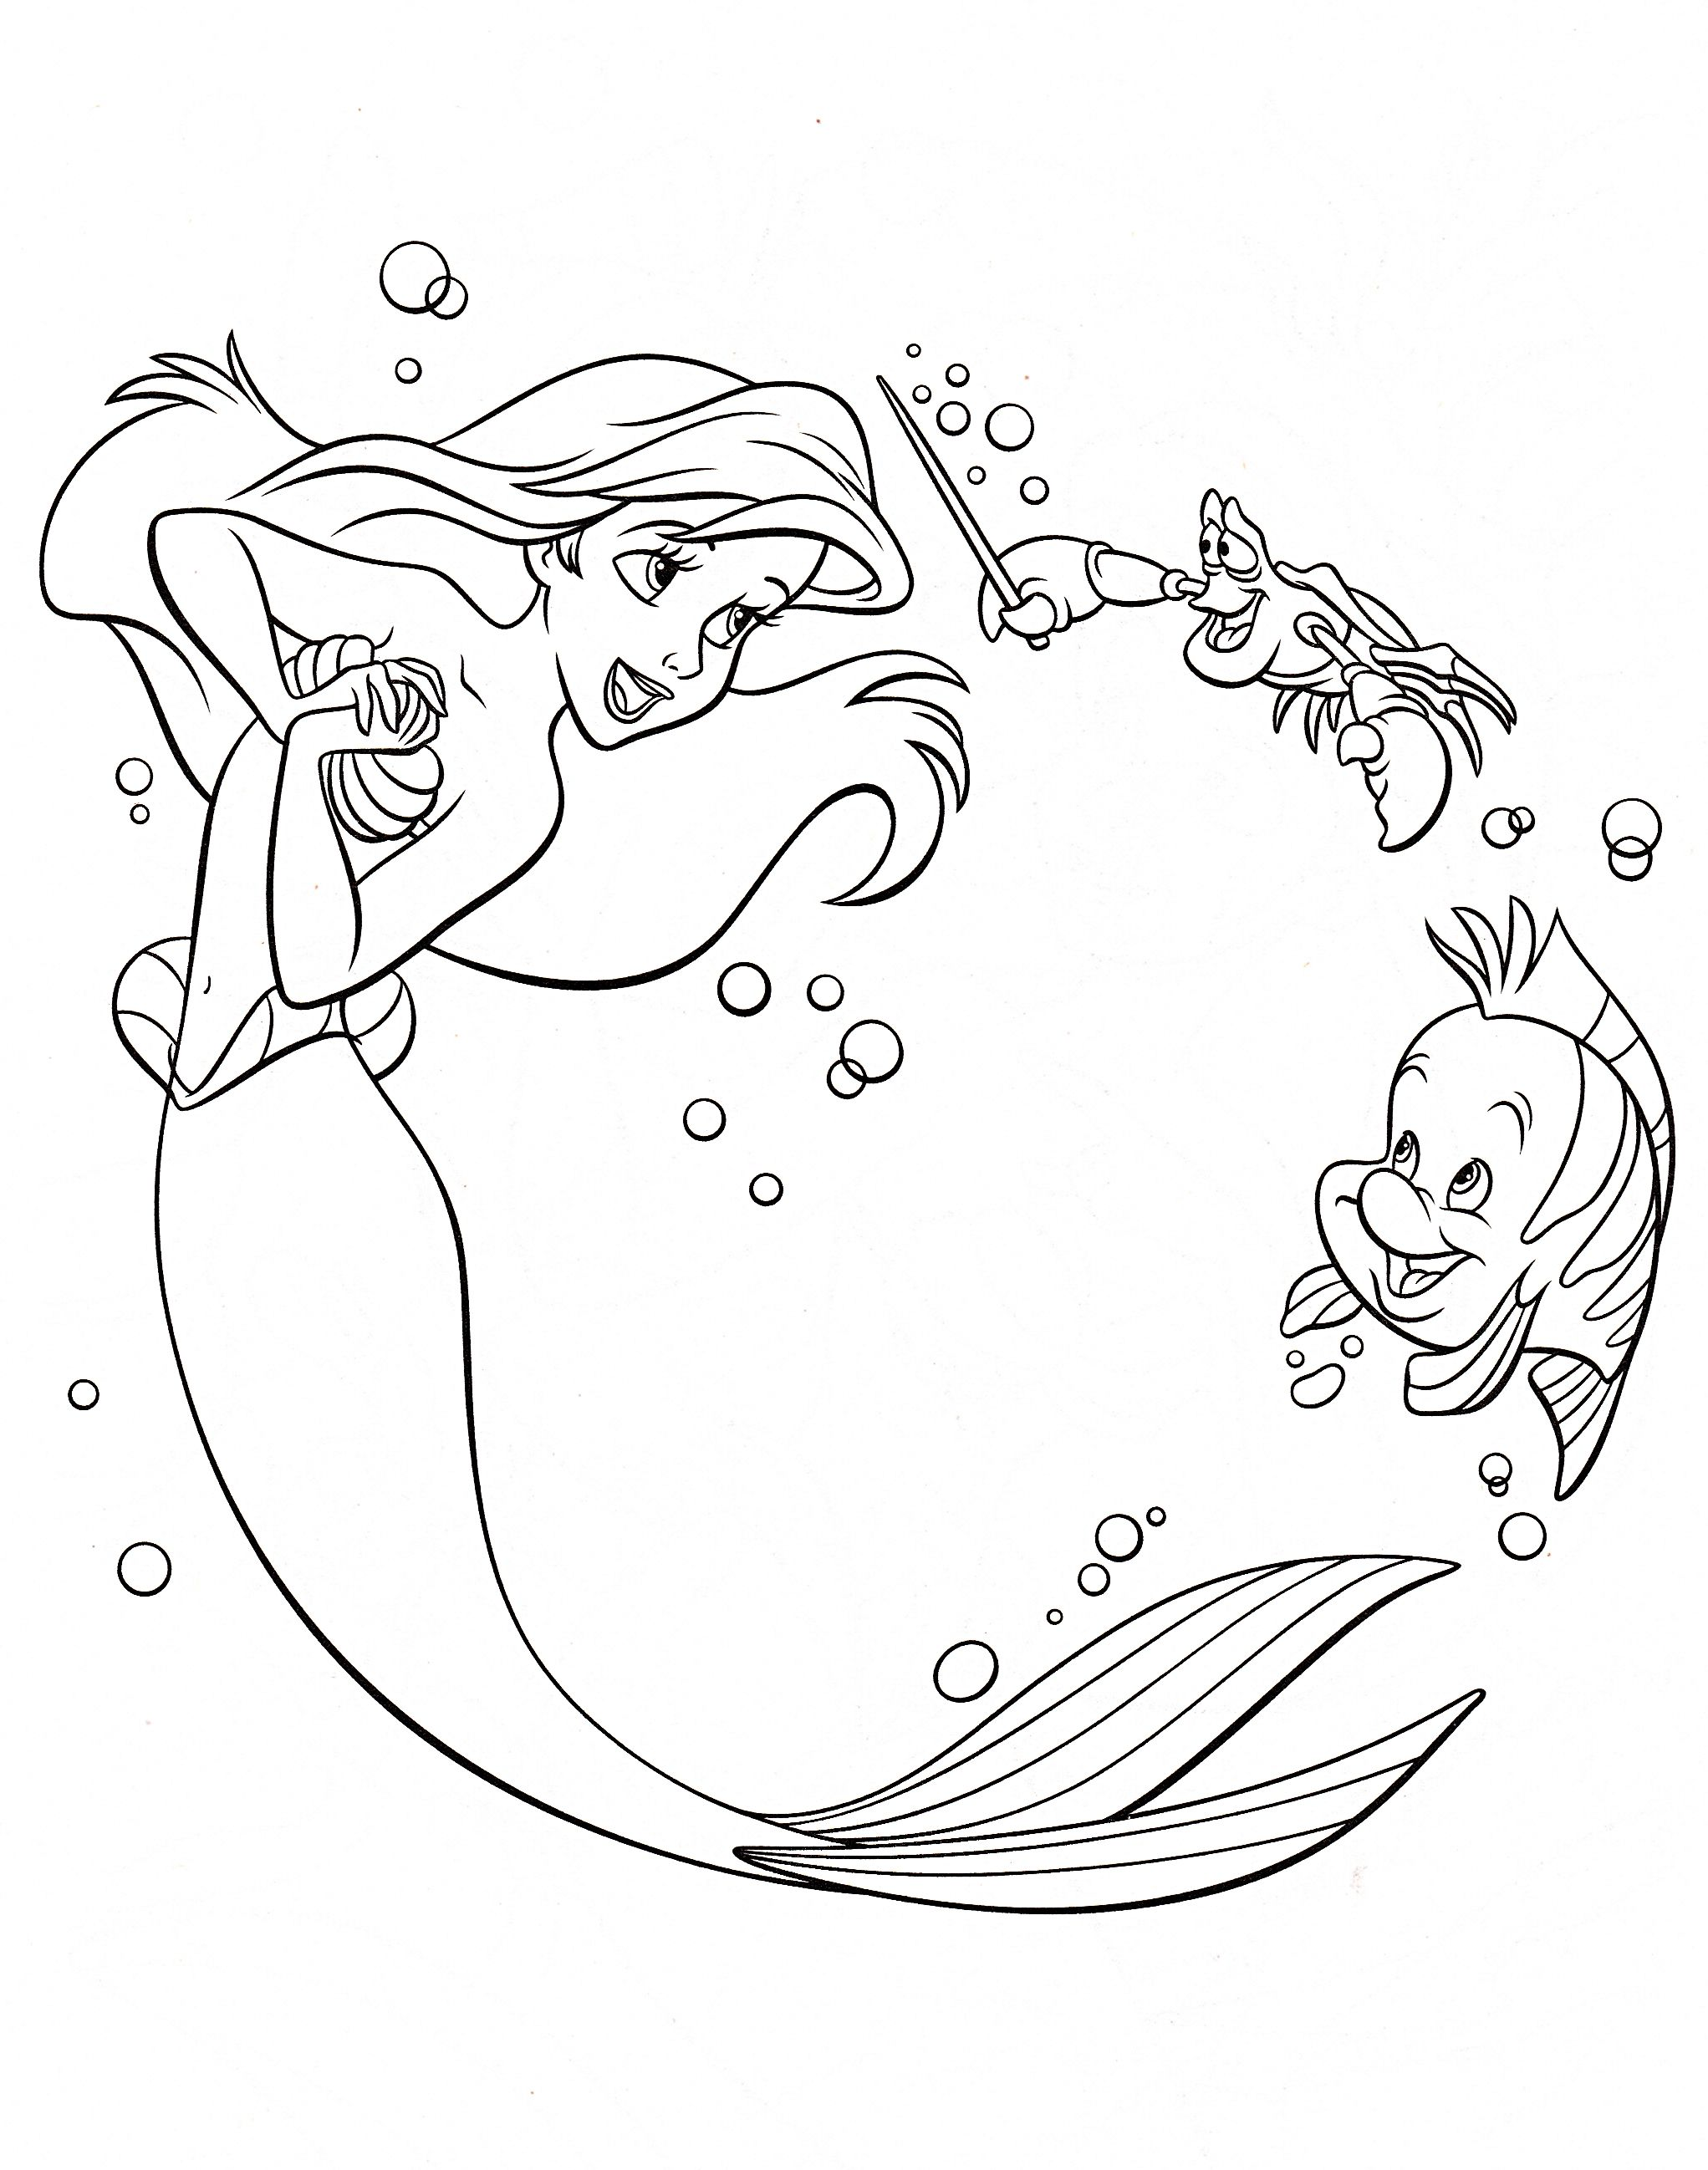 Generic princess coloring pages - Walt Disney Coloring Pages Princess Aquata King Triton Princess Ariel Walt Disney Characters 34325261 2138 2853